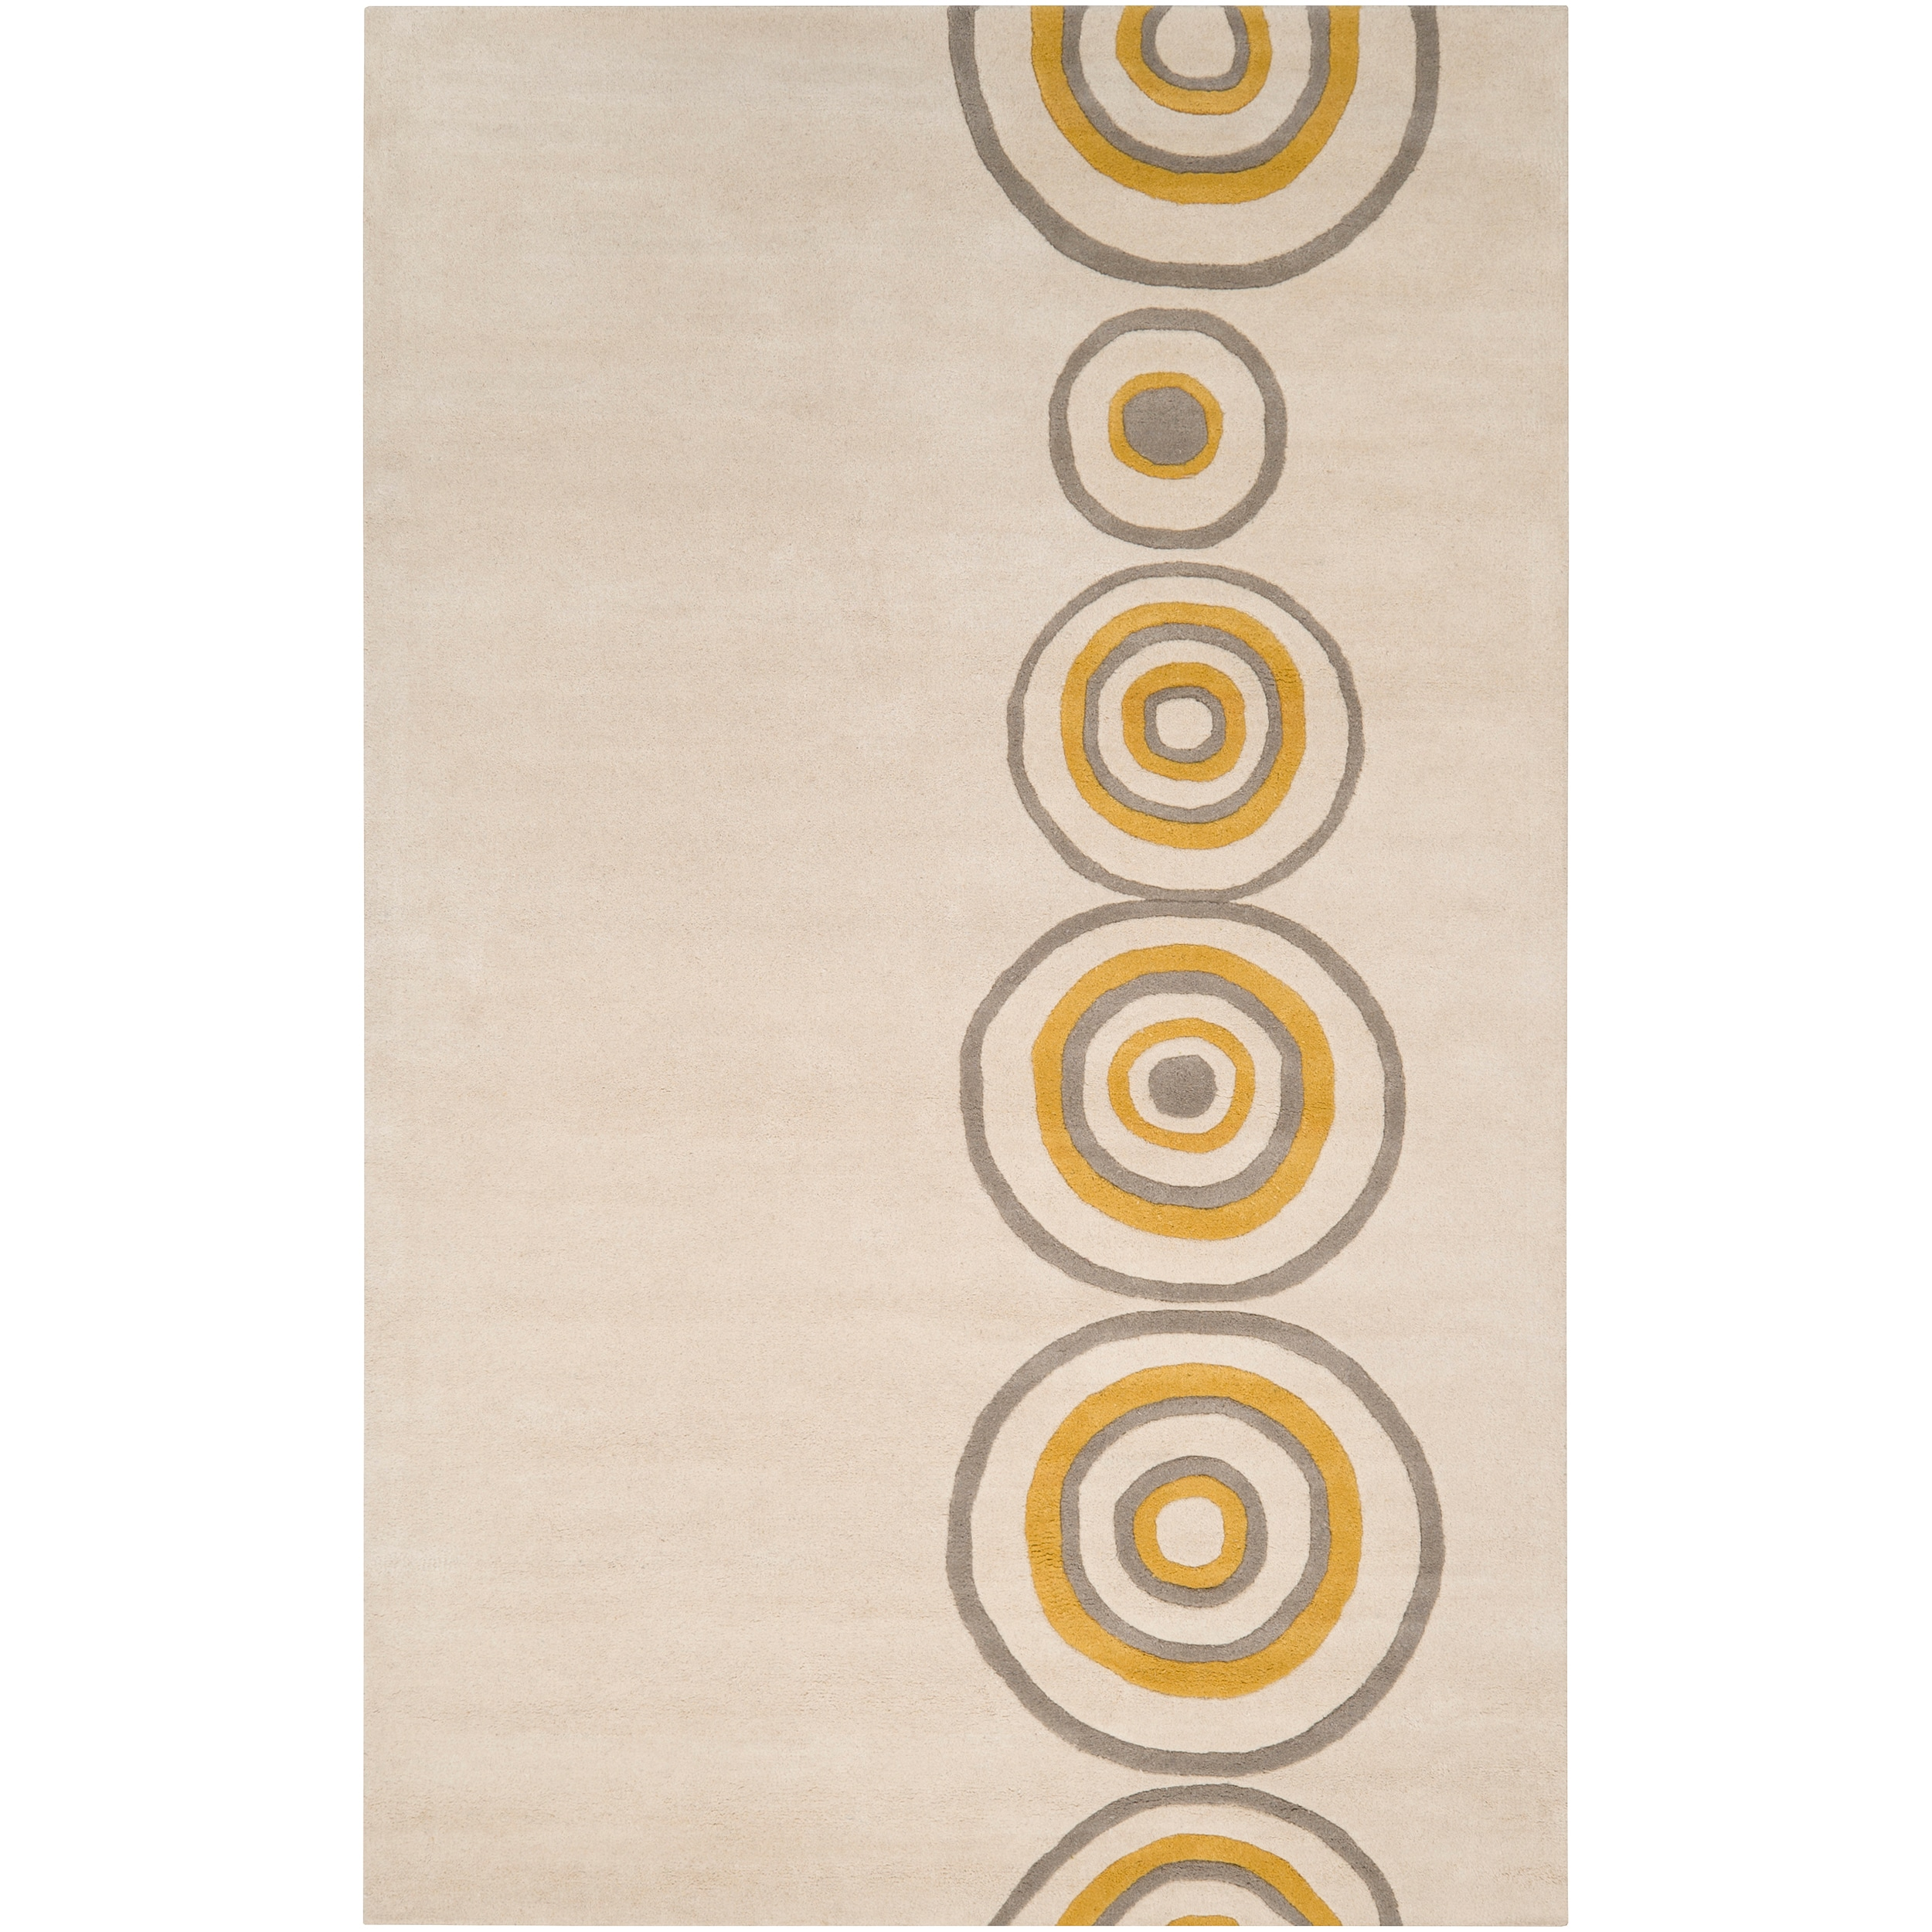 Hand-tufted Contemporary Beige Circles Axbridge New Zealand Wool Abstract Rug (5' x 8')